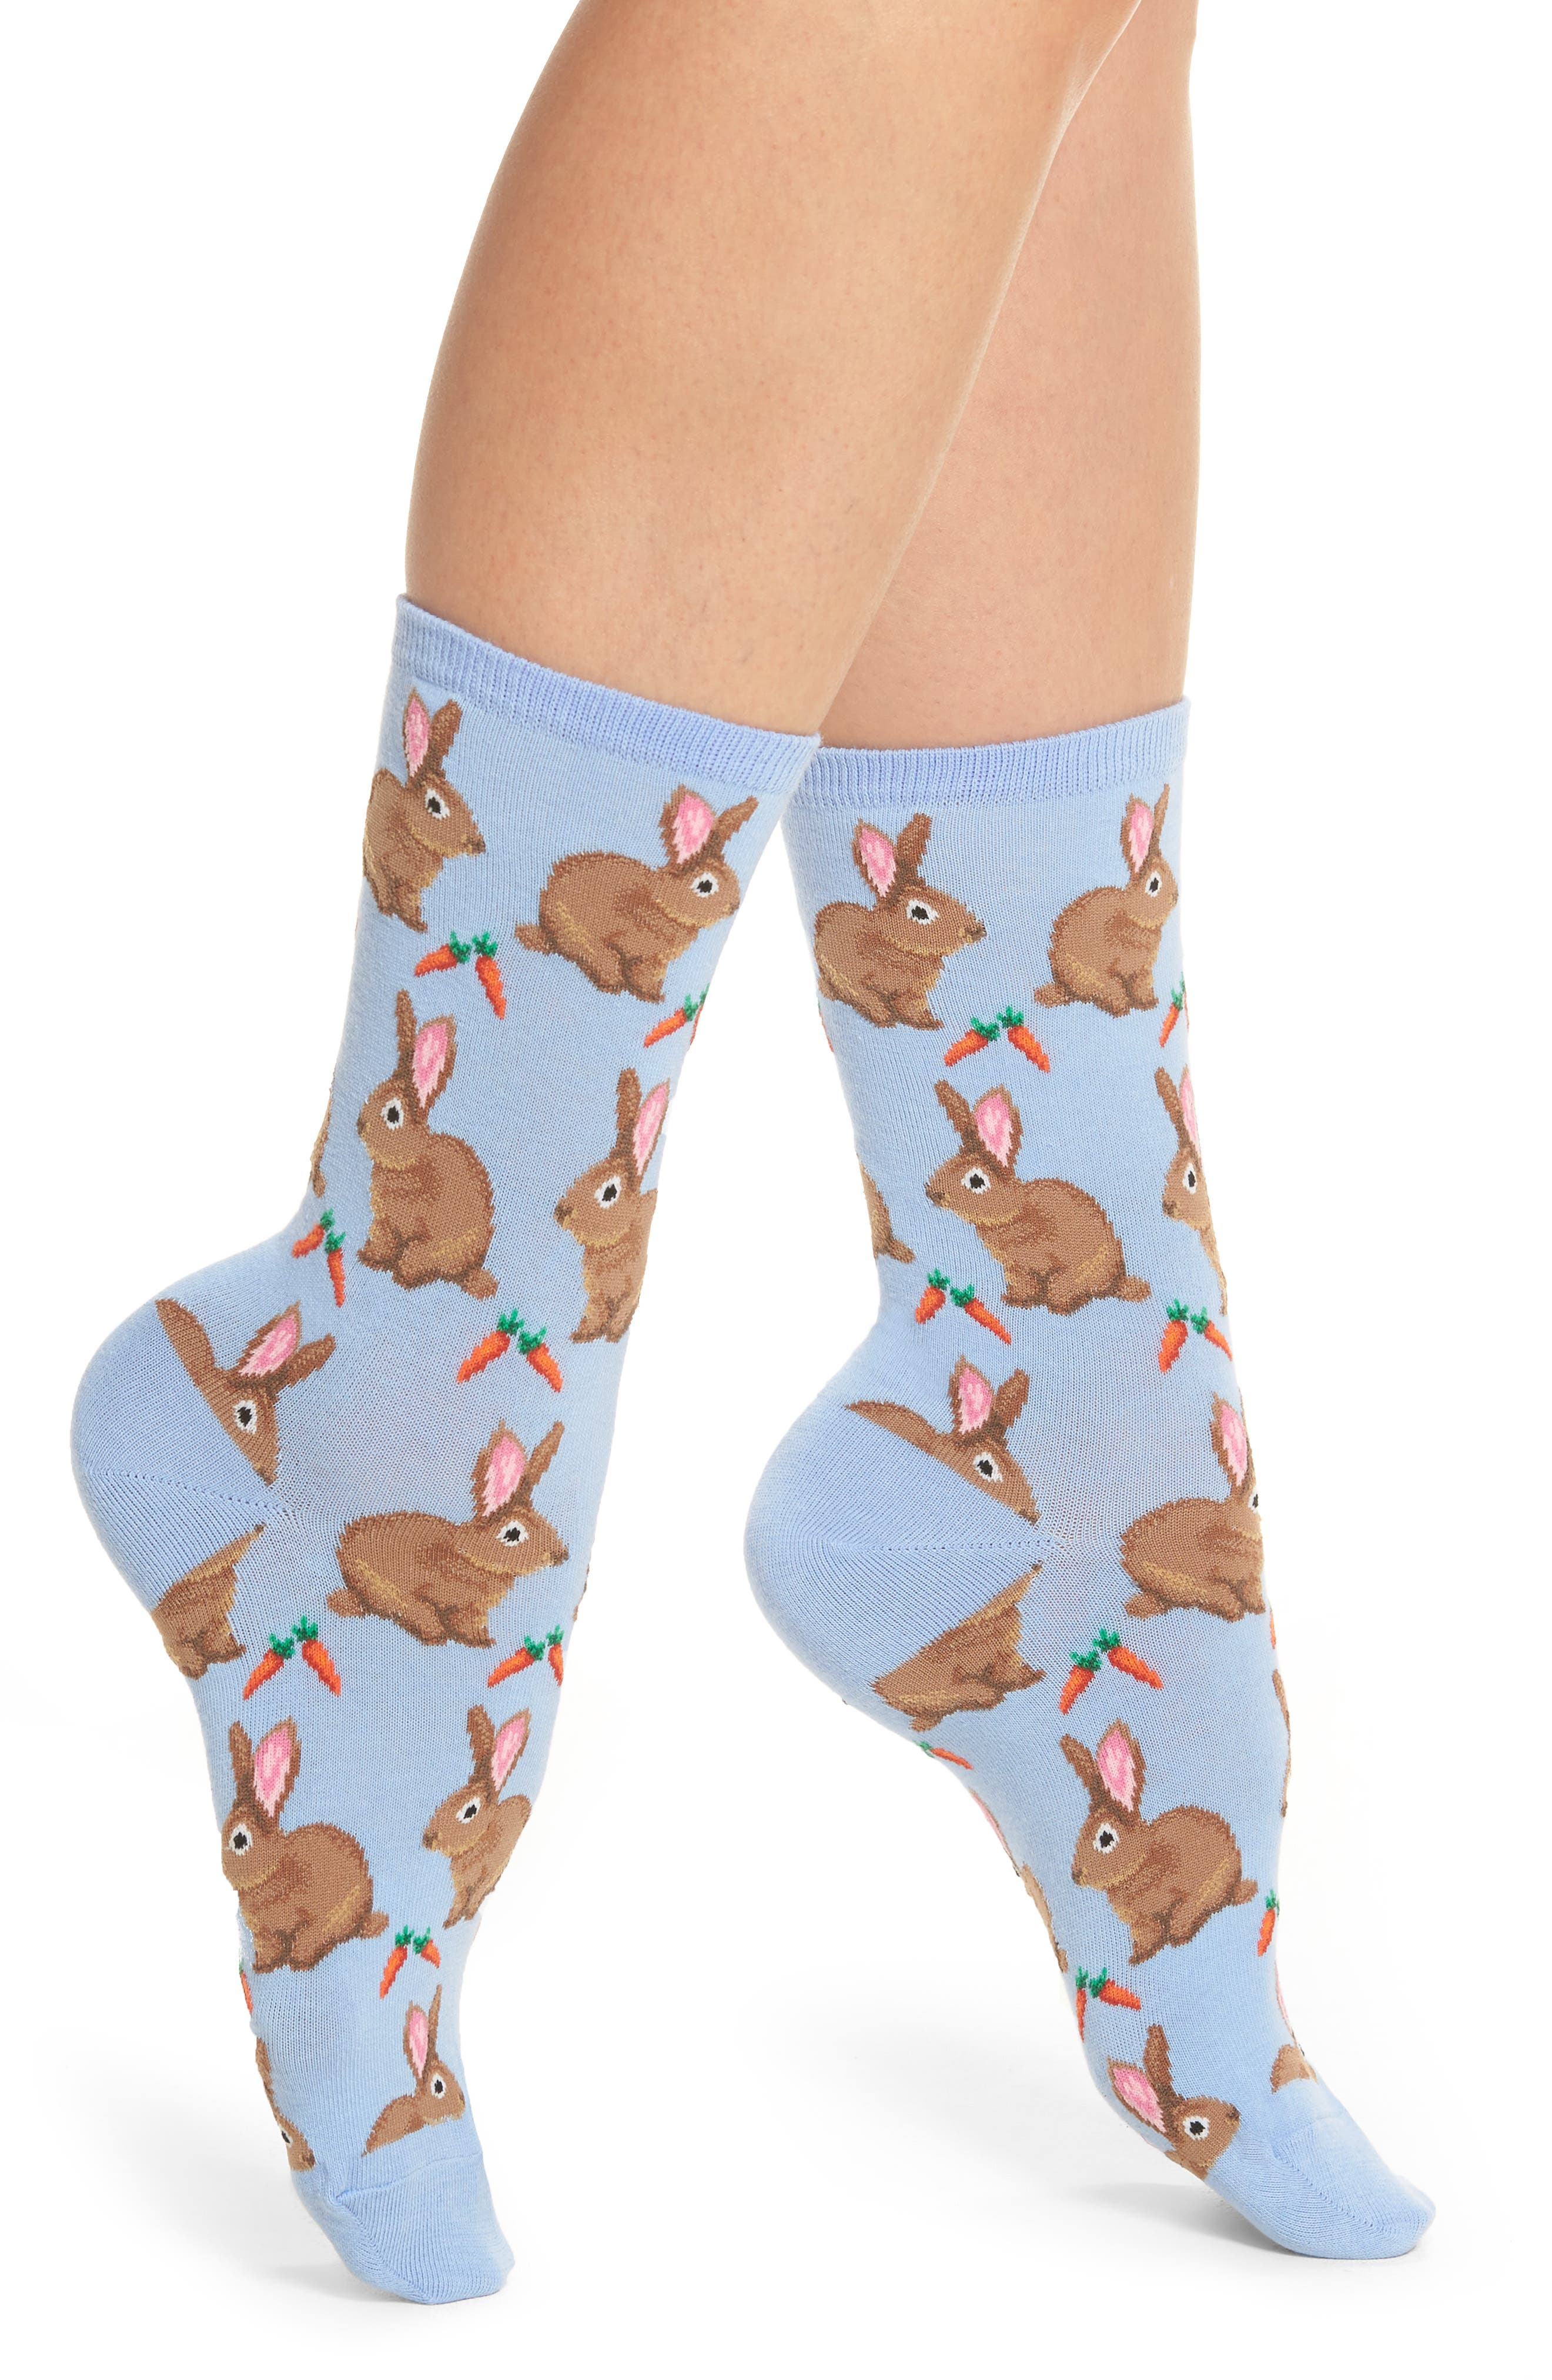 Main Image - Hot Sox Bunnies Crew Socks (3 for $15)